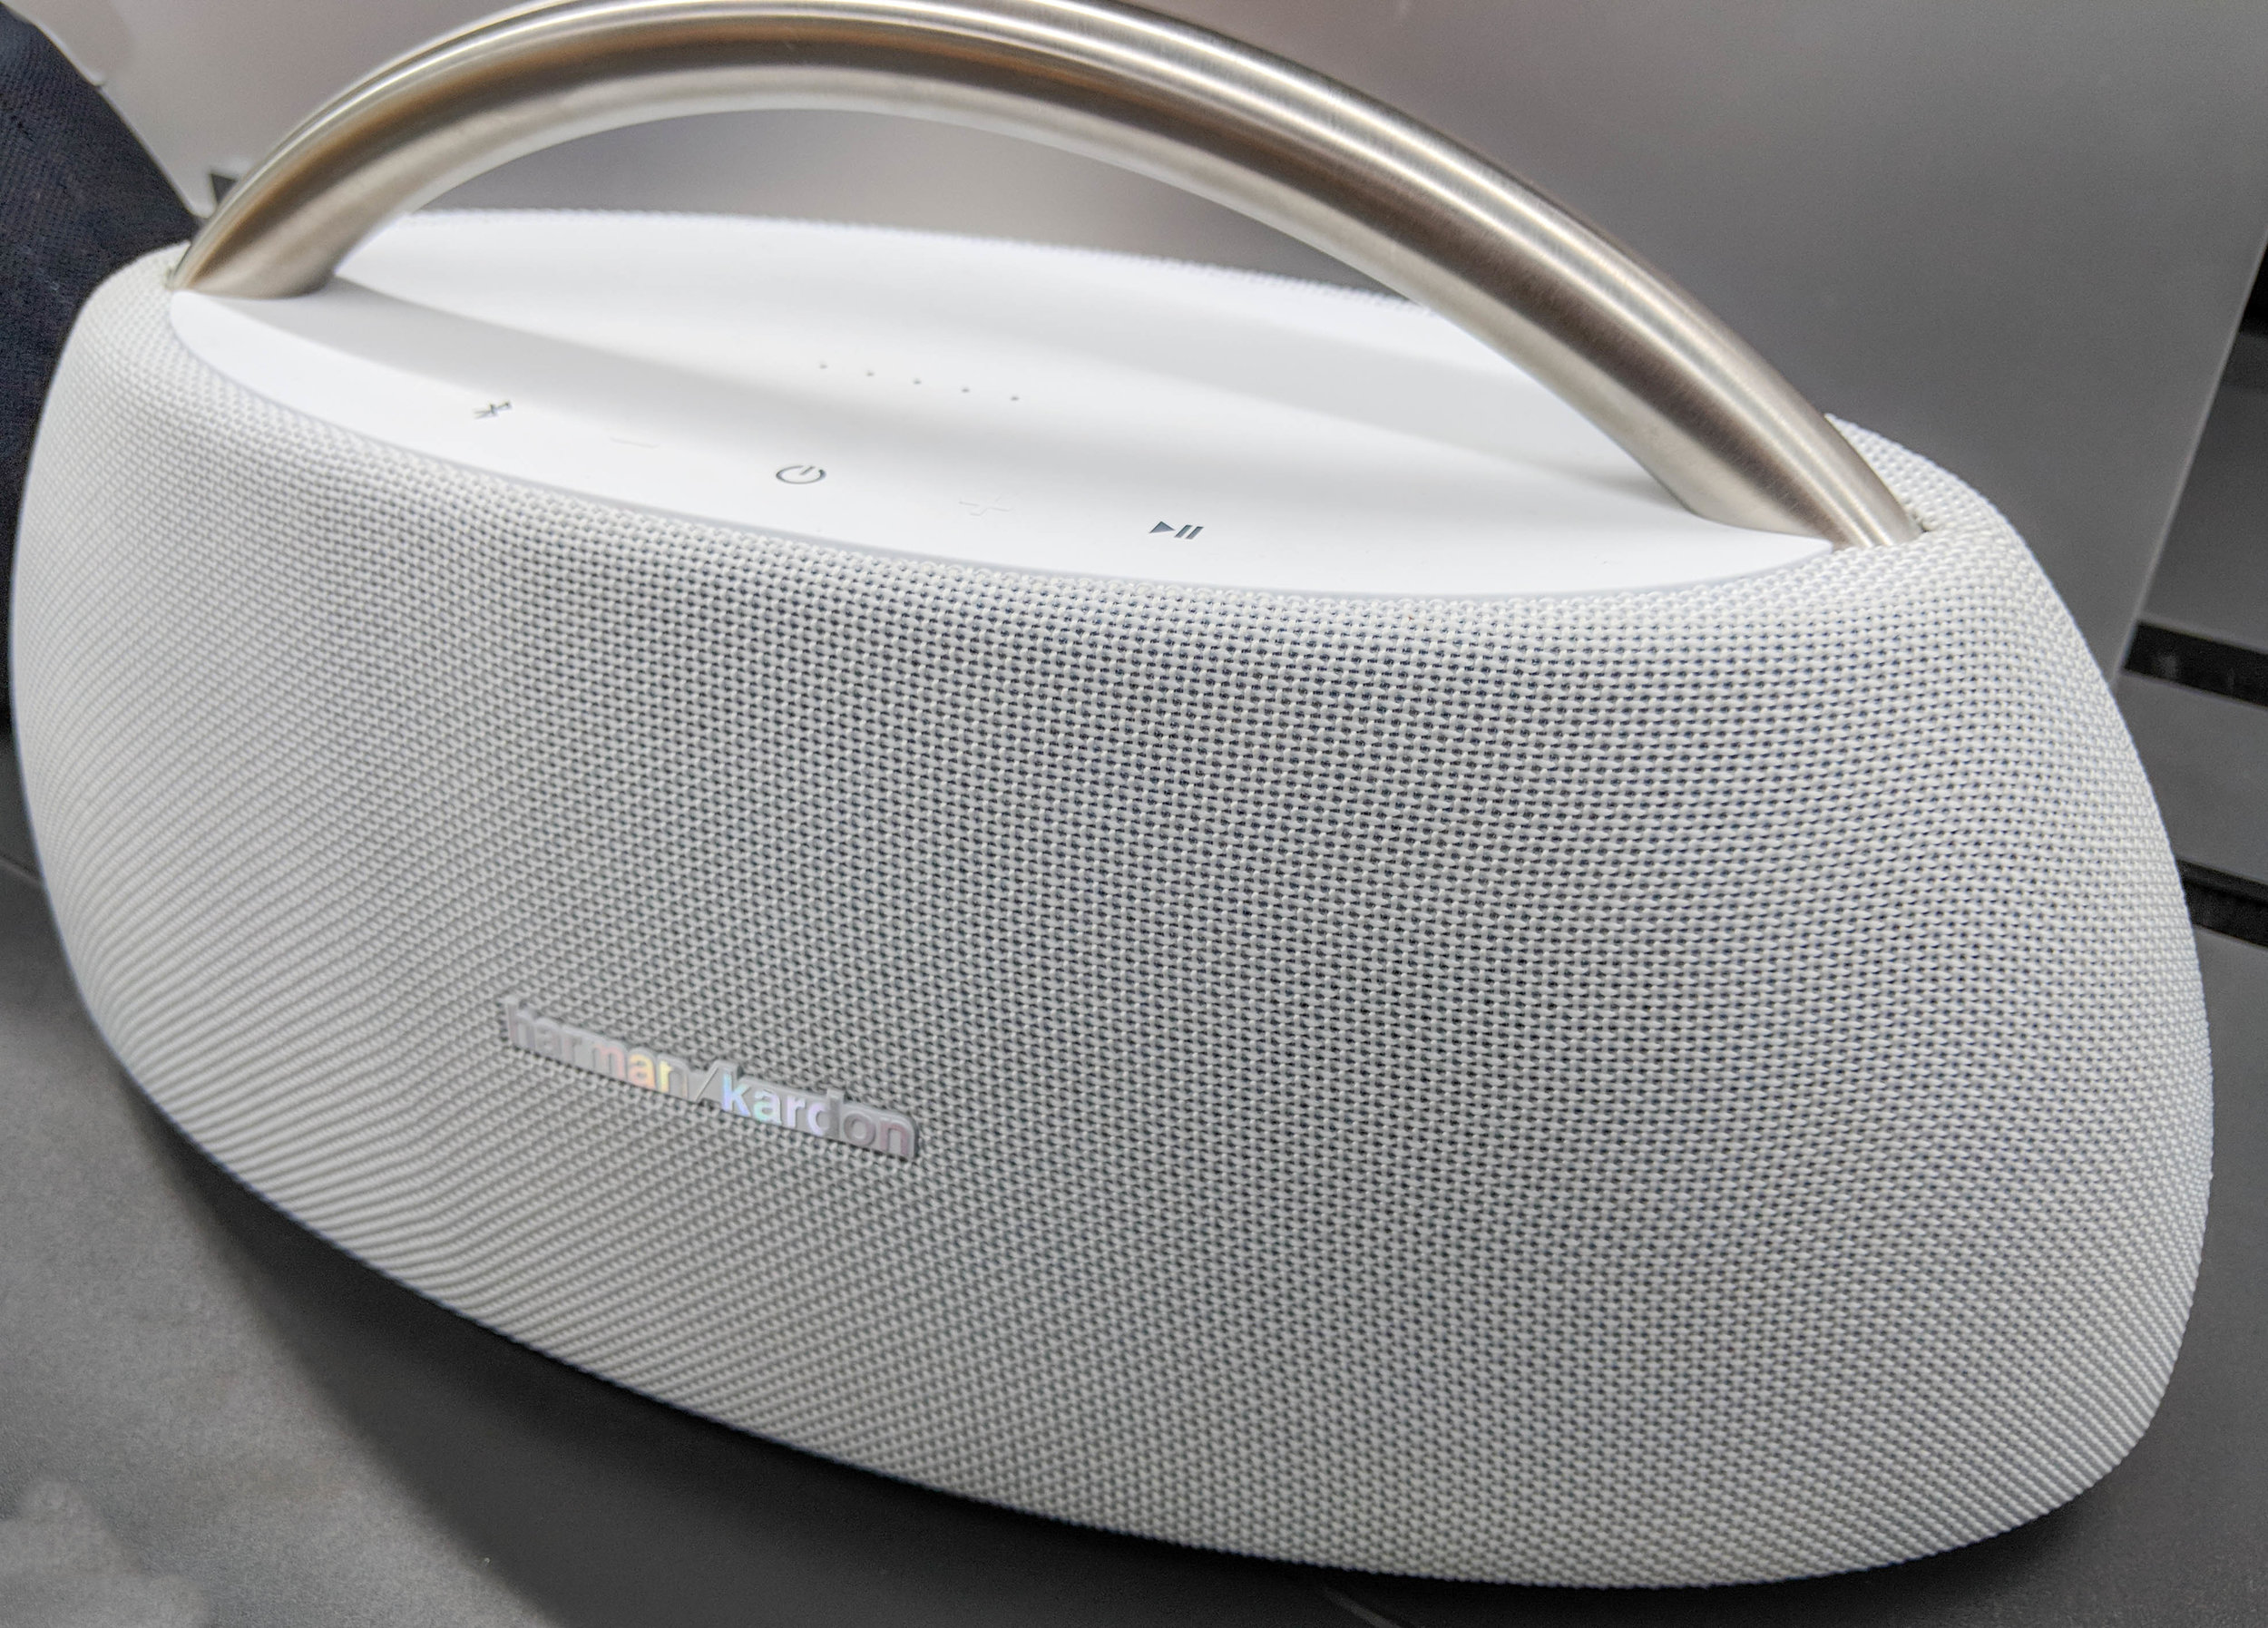 Harmon Kardon go + play review. Wireless bluetooth speaker with excellent bass.